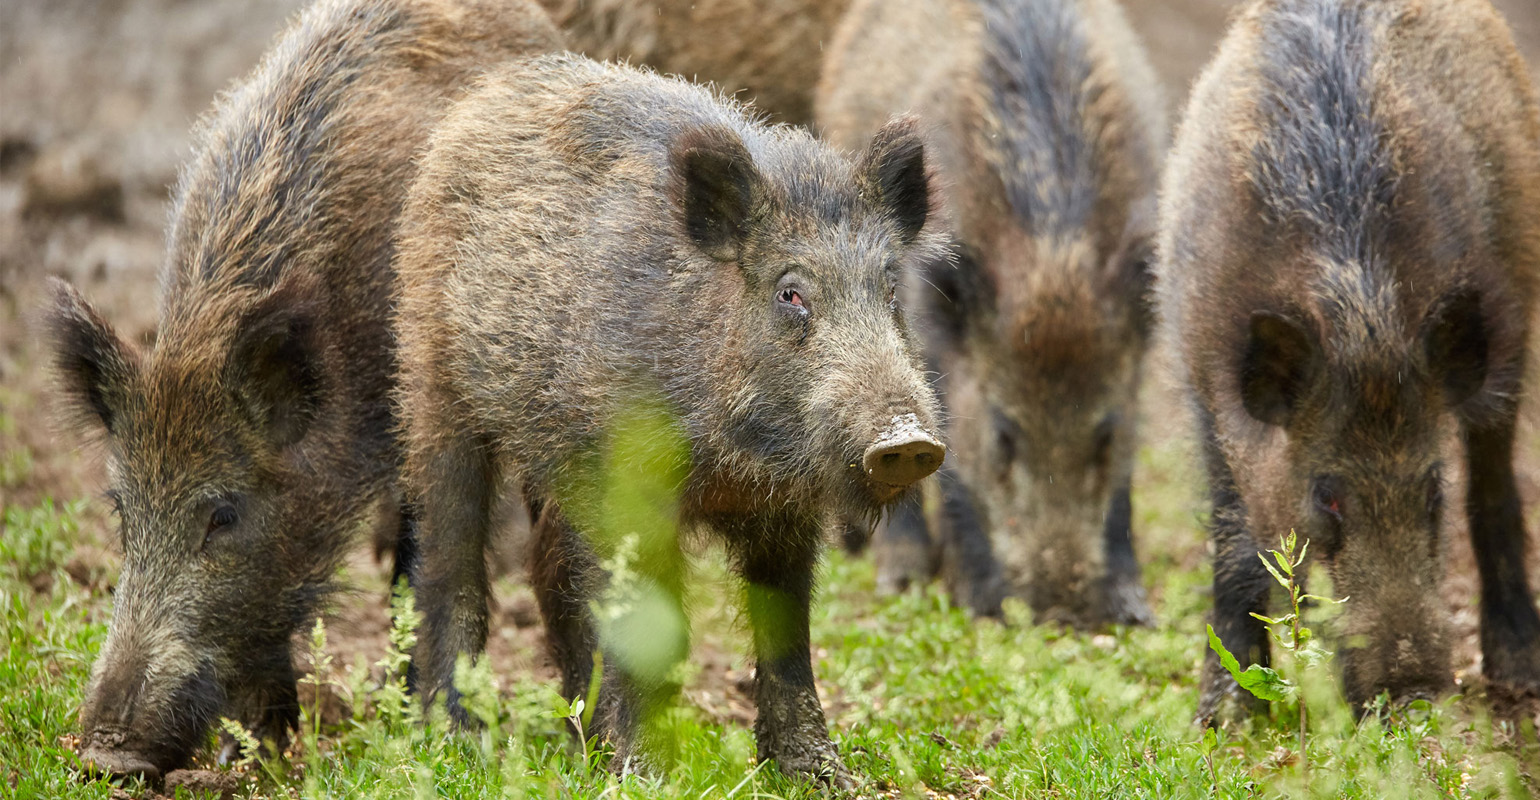 juvenile-wild-hogs-GettyImages-971011550-web.jpg